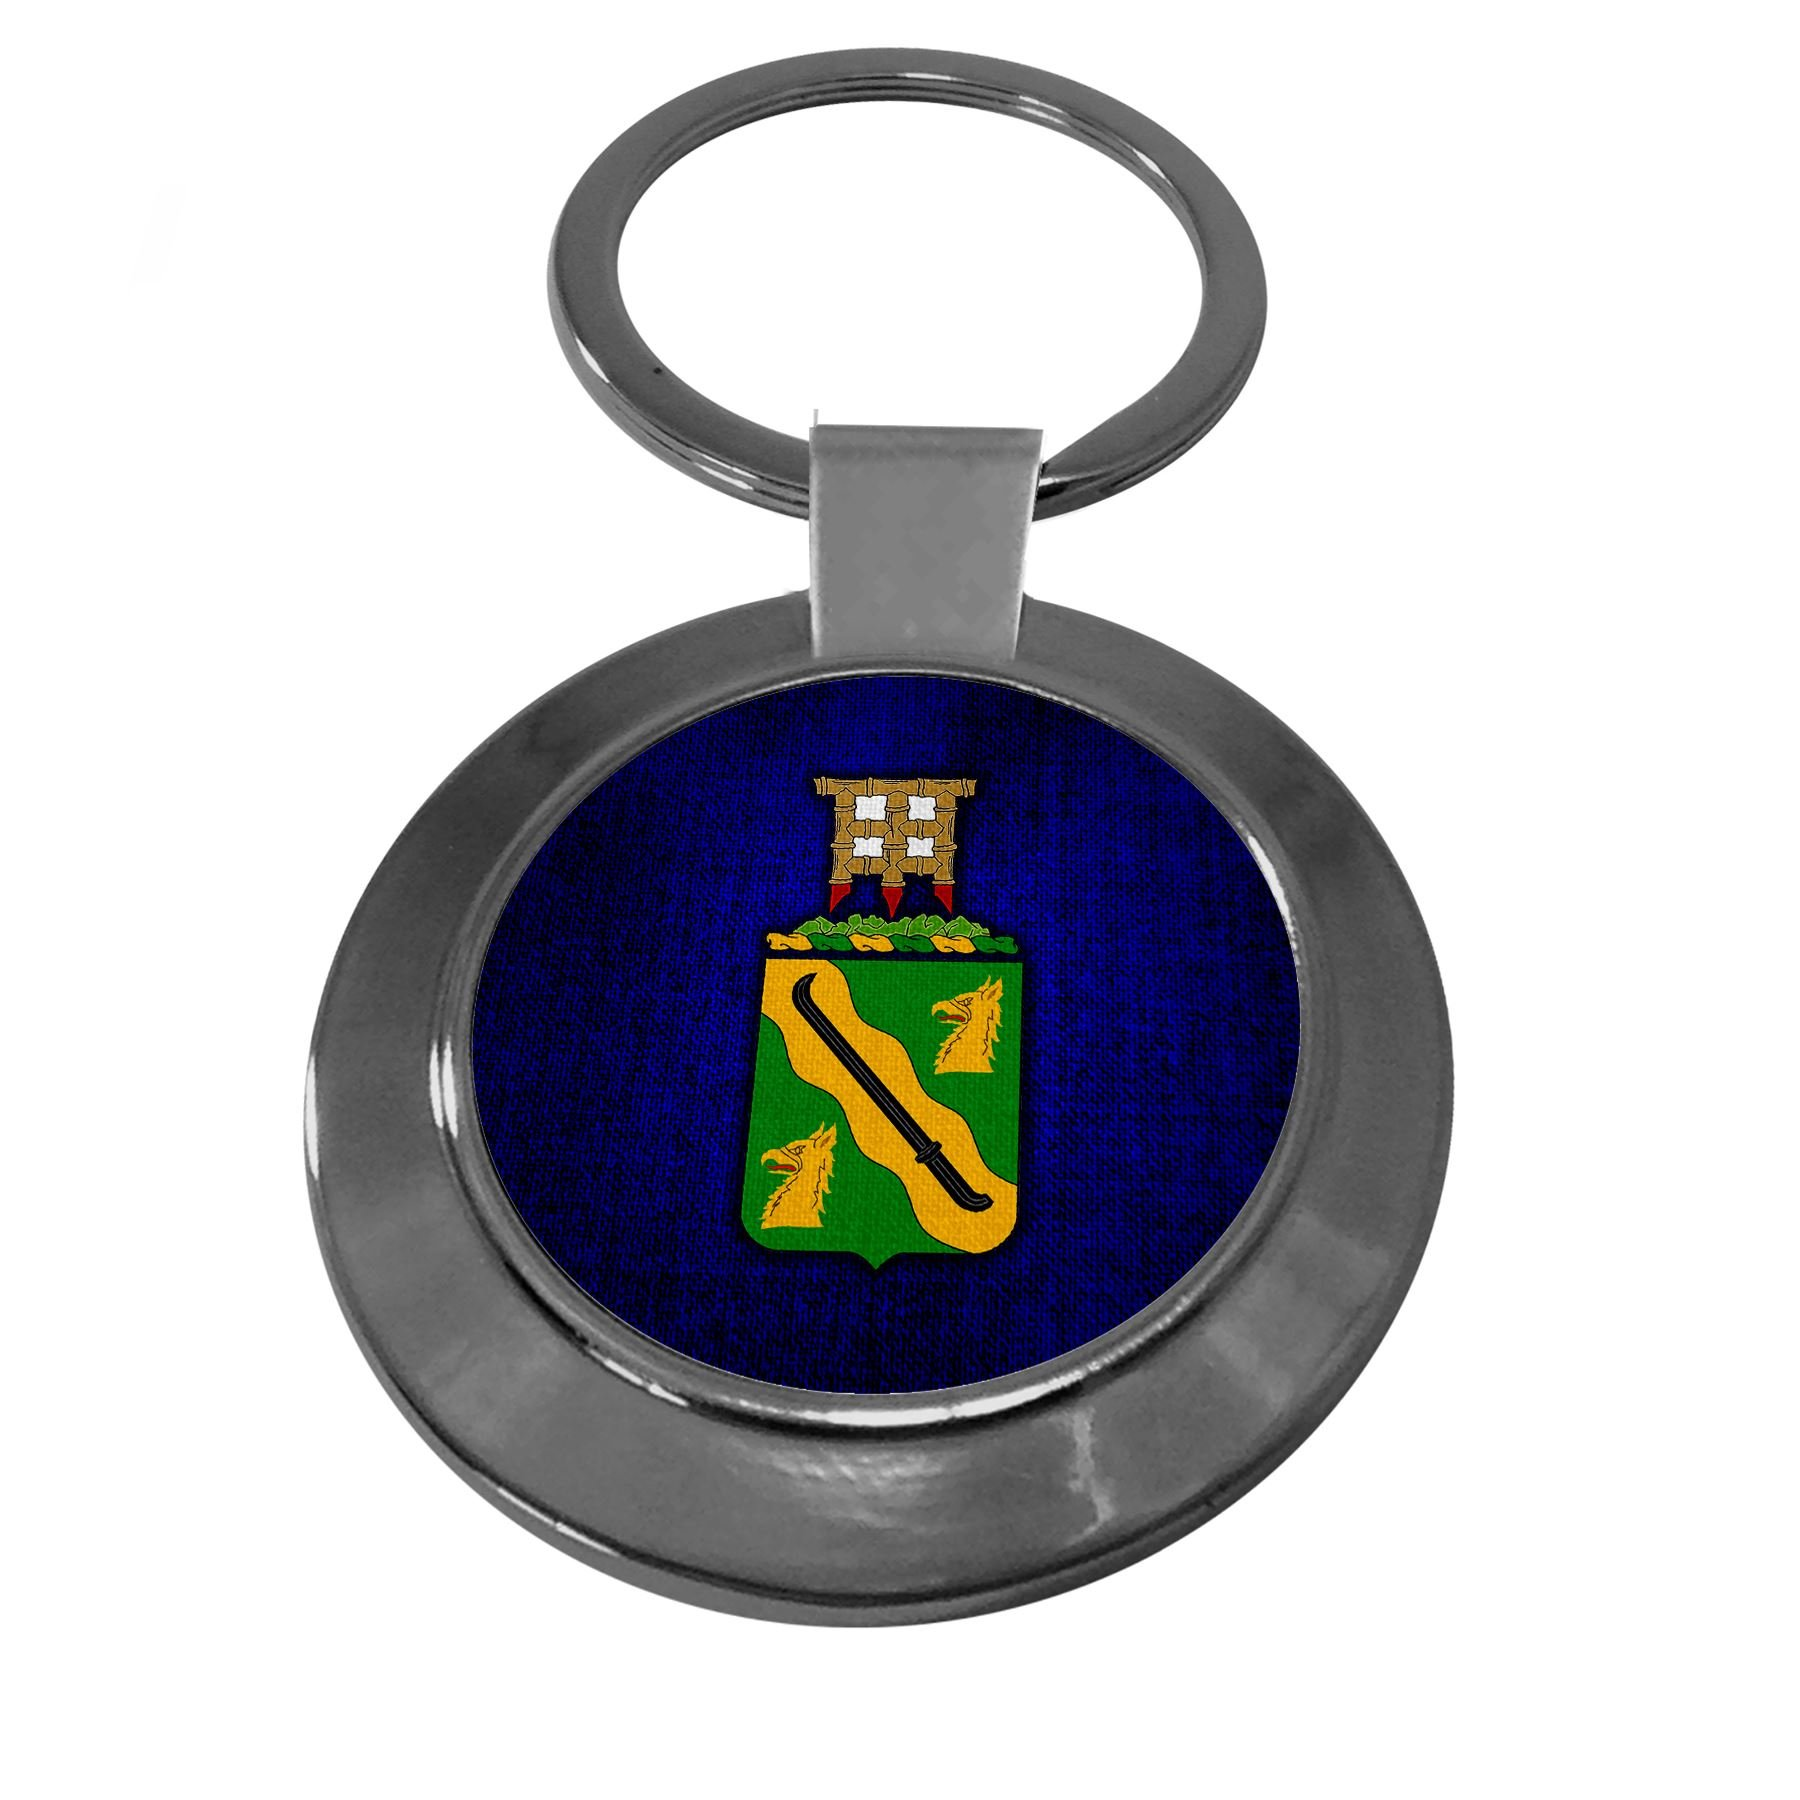 Premium Key Ring with U.S. Army 95th Military Police Battalion, coat of arms